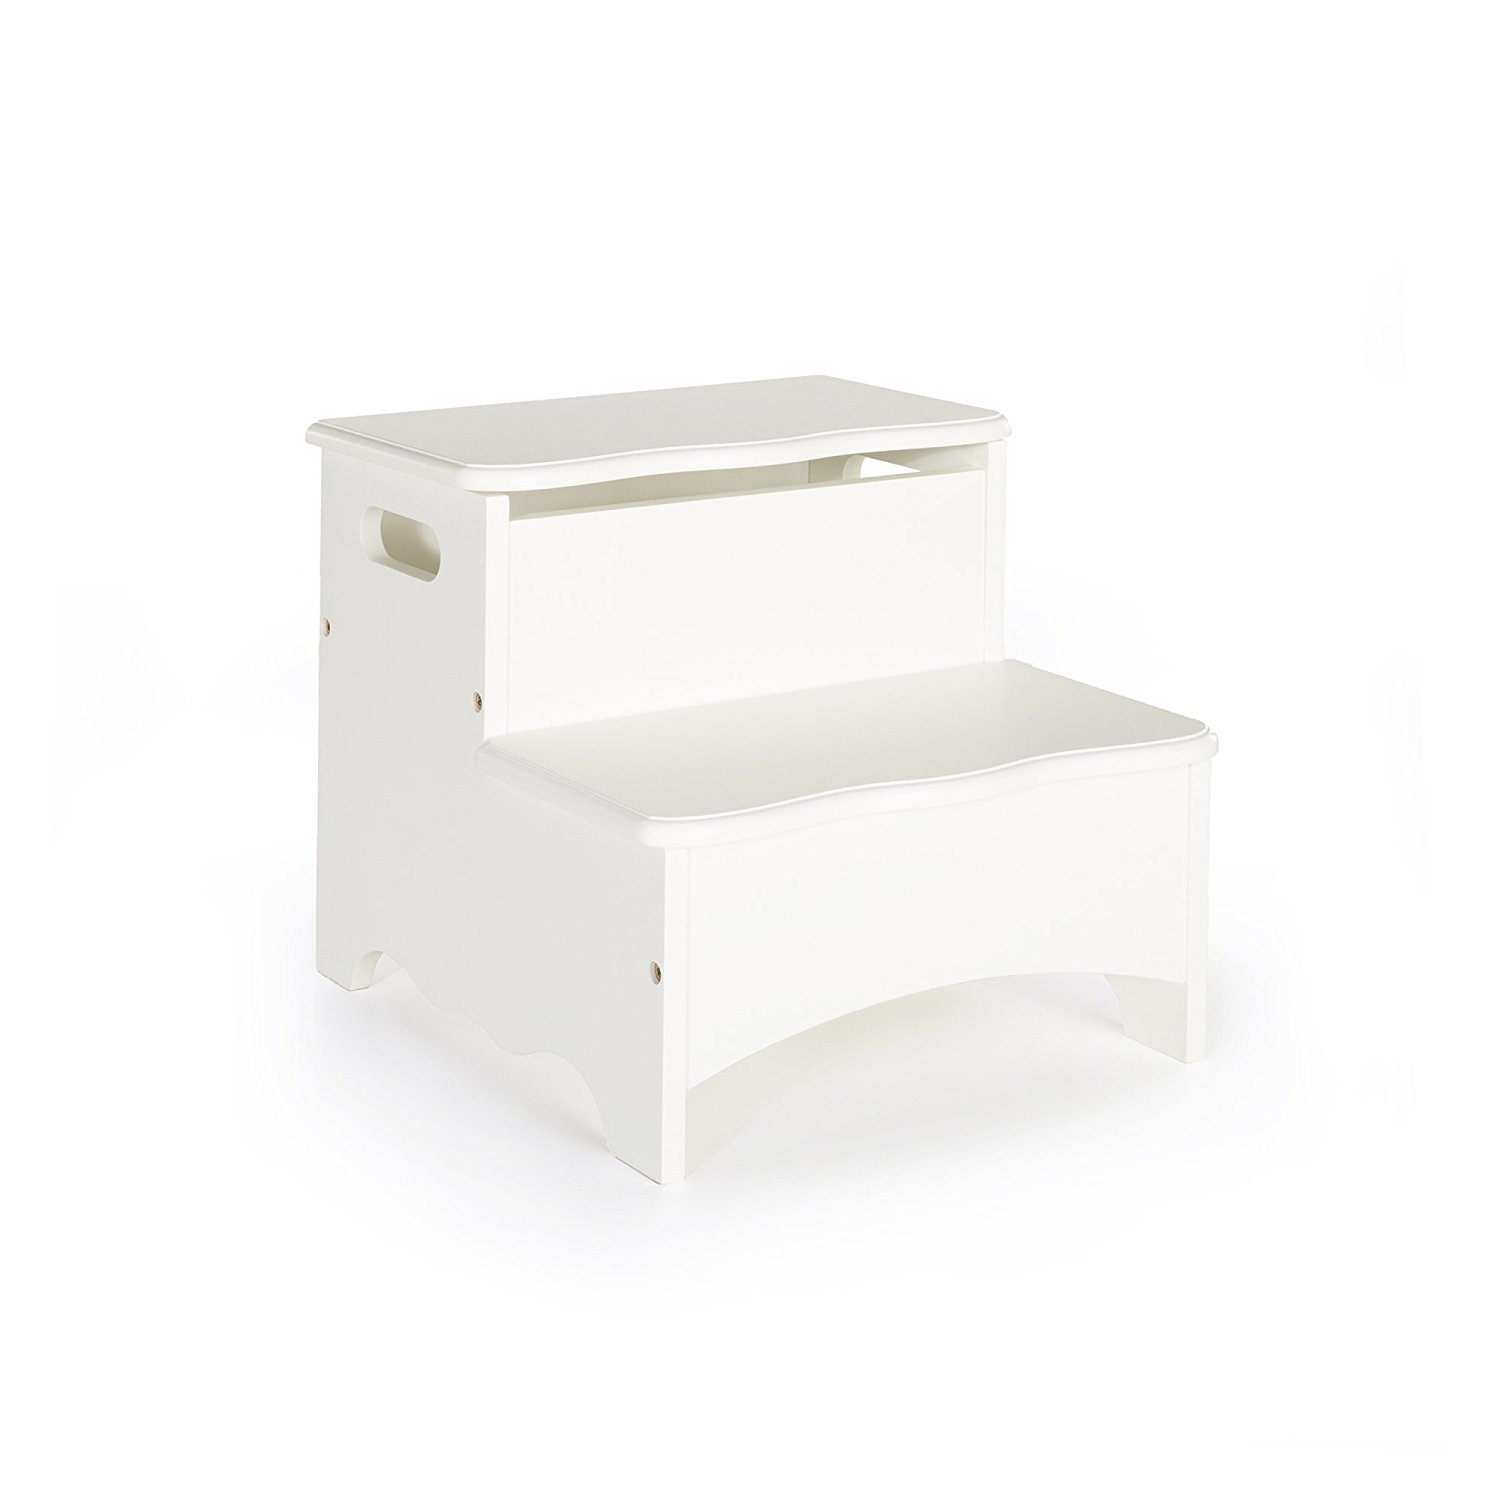 Guidecraft Classic White Step-Up Toy Storage Stool Kids Furniture by Guidecraft